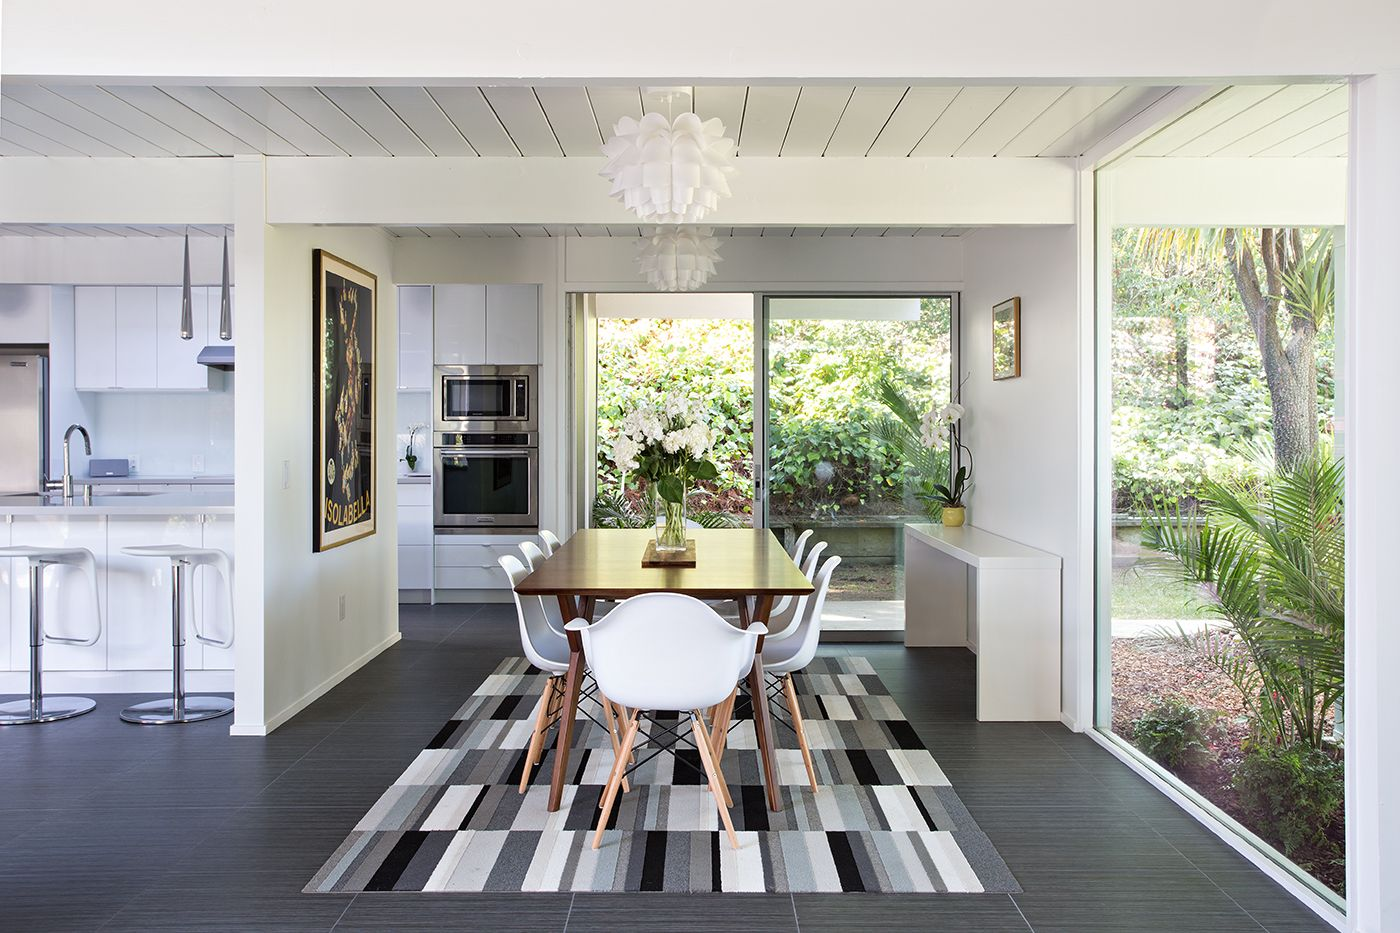 Dining Room Remodel Pictures Amazing Burlingame Eichler With Open Plan Dining Room Table  Eichler Design Inspiration